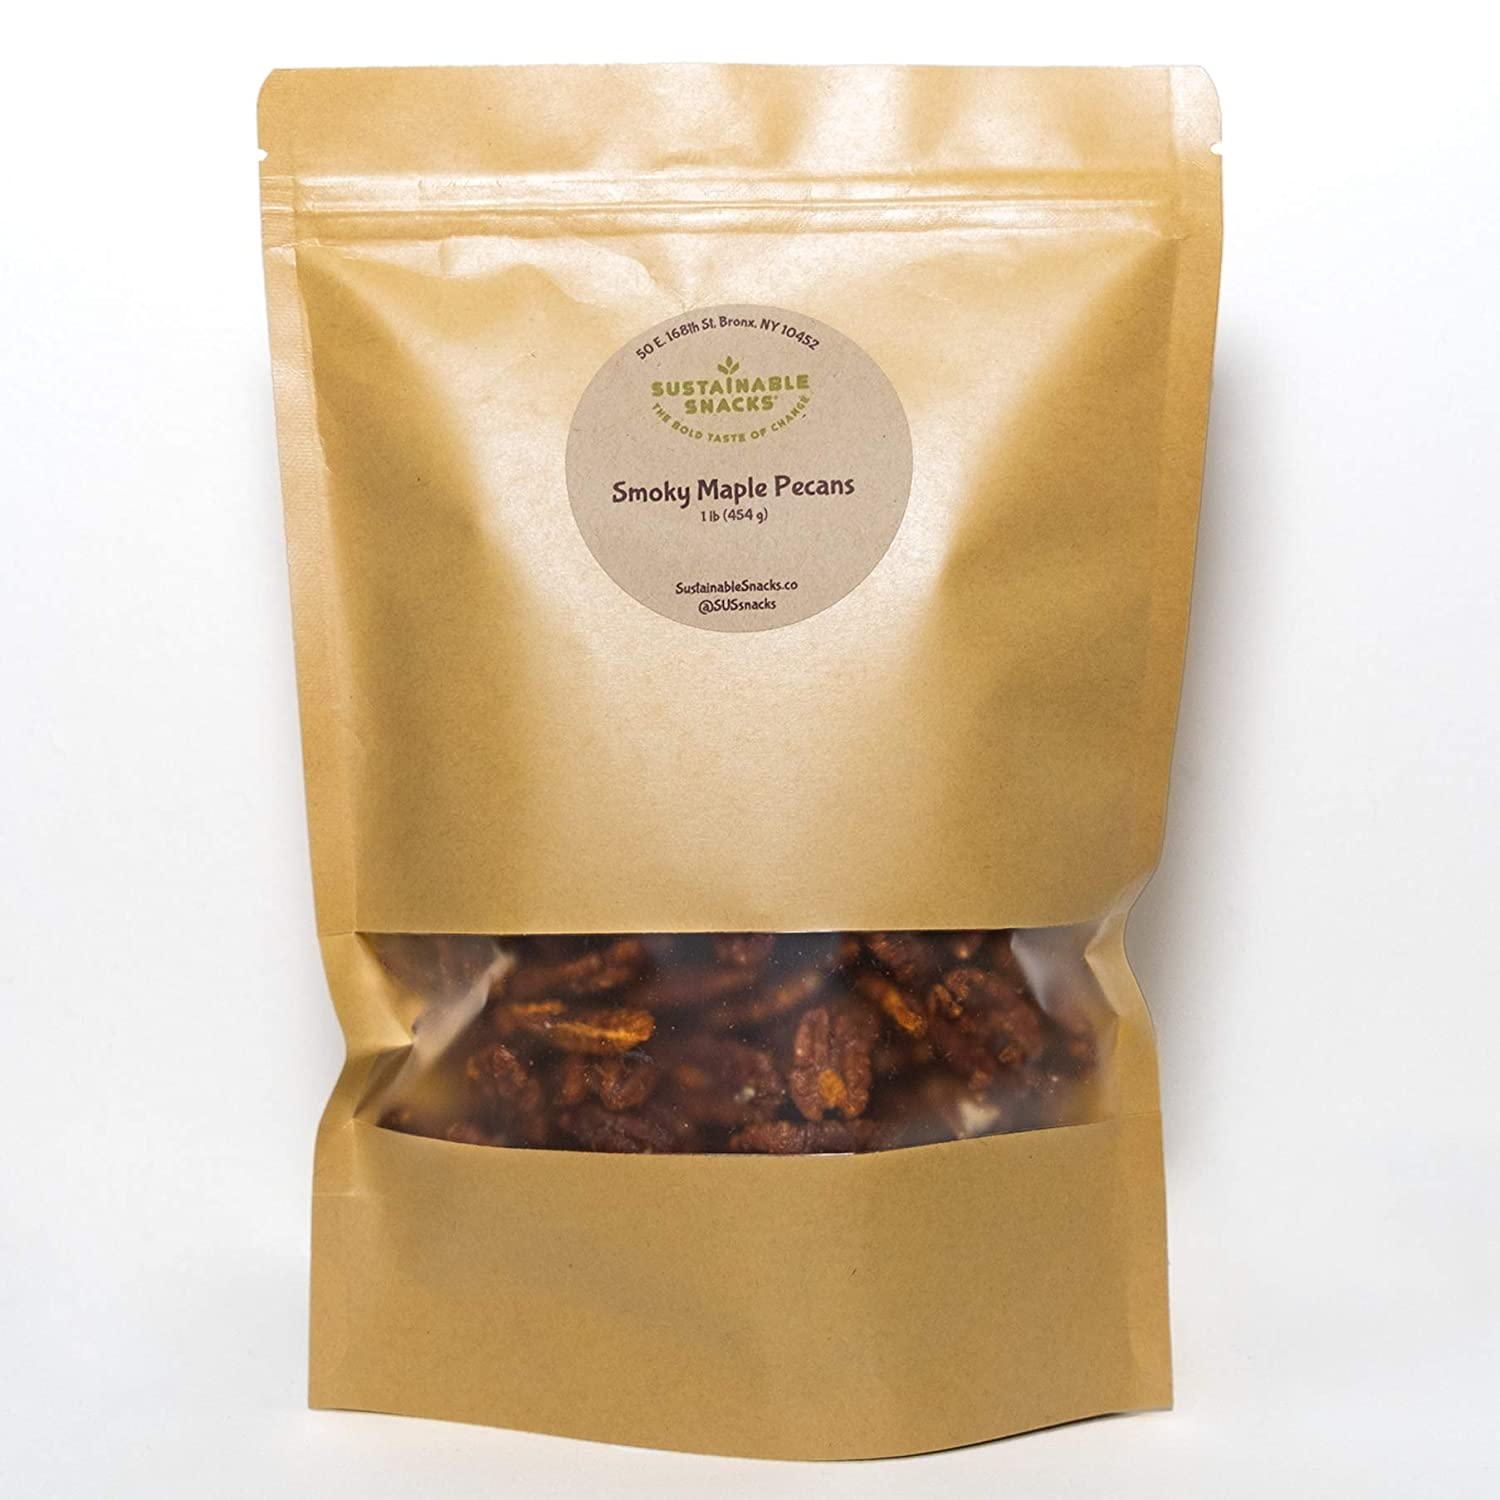 SUSTAINABLE SNACKS Smoky Maple Pecans, 1 lb bag - Vegan, Paleo, Gluten-Free, plant-based protein snack